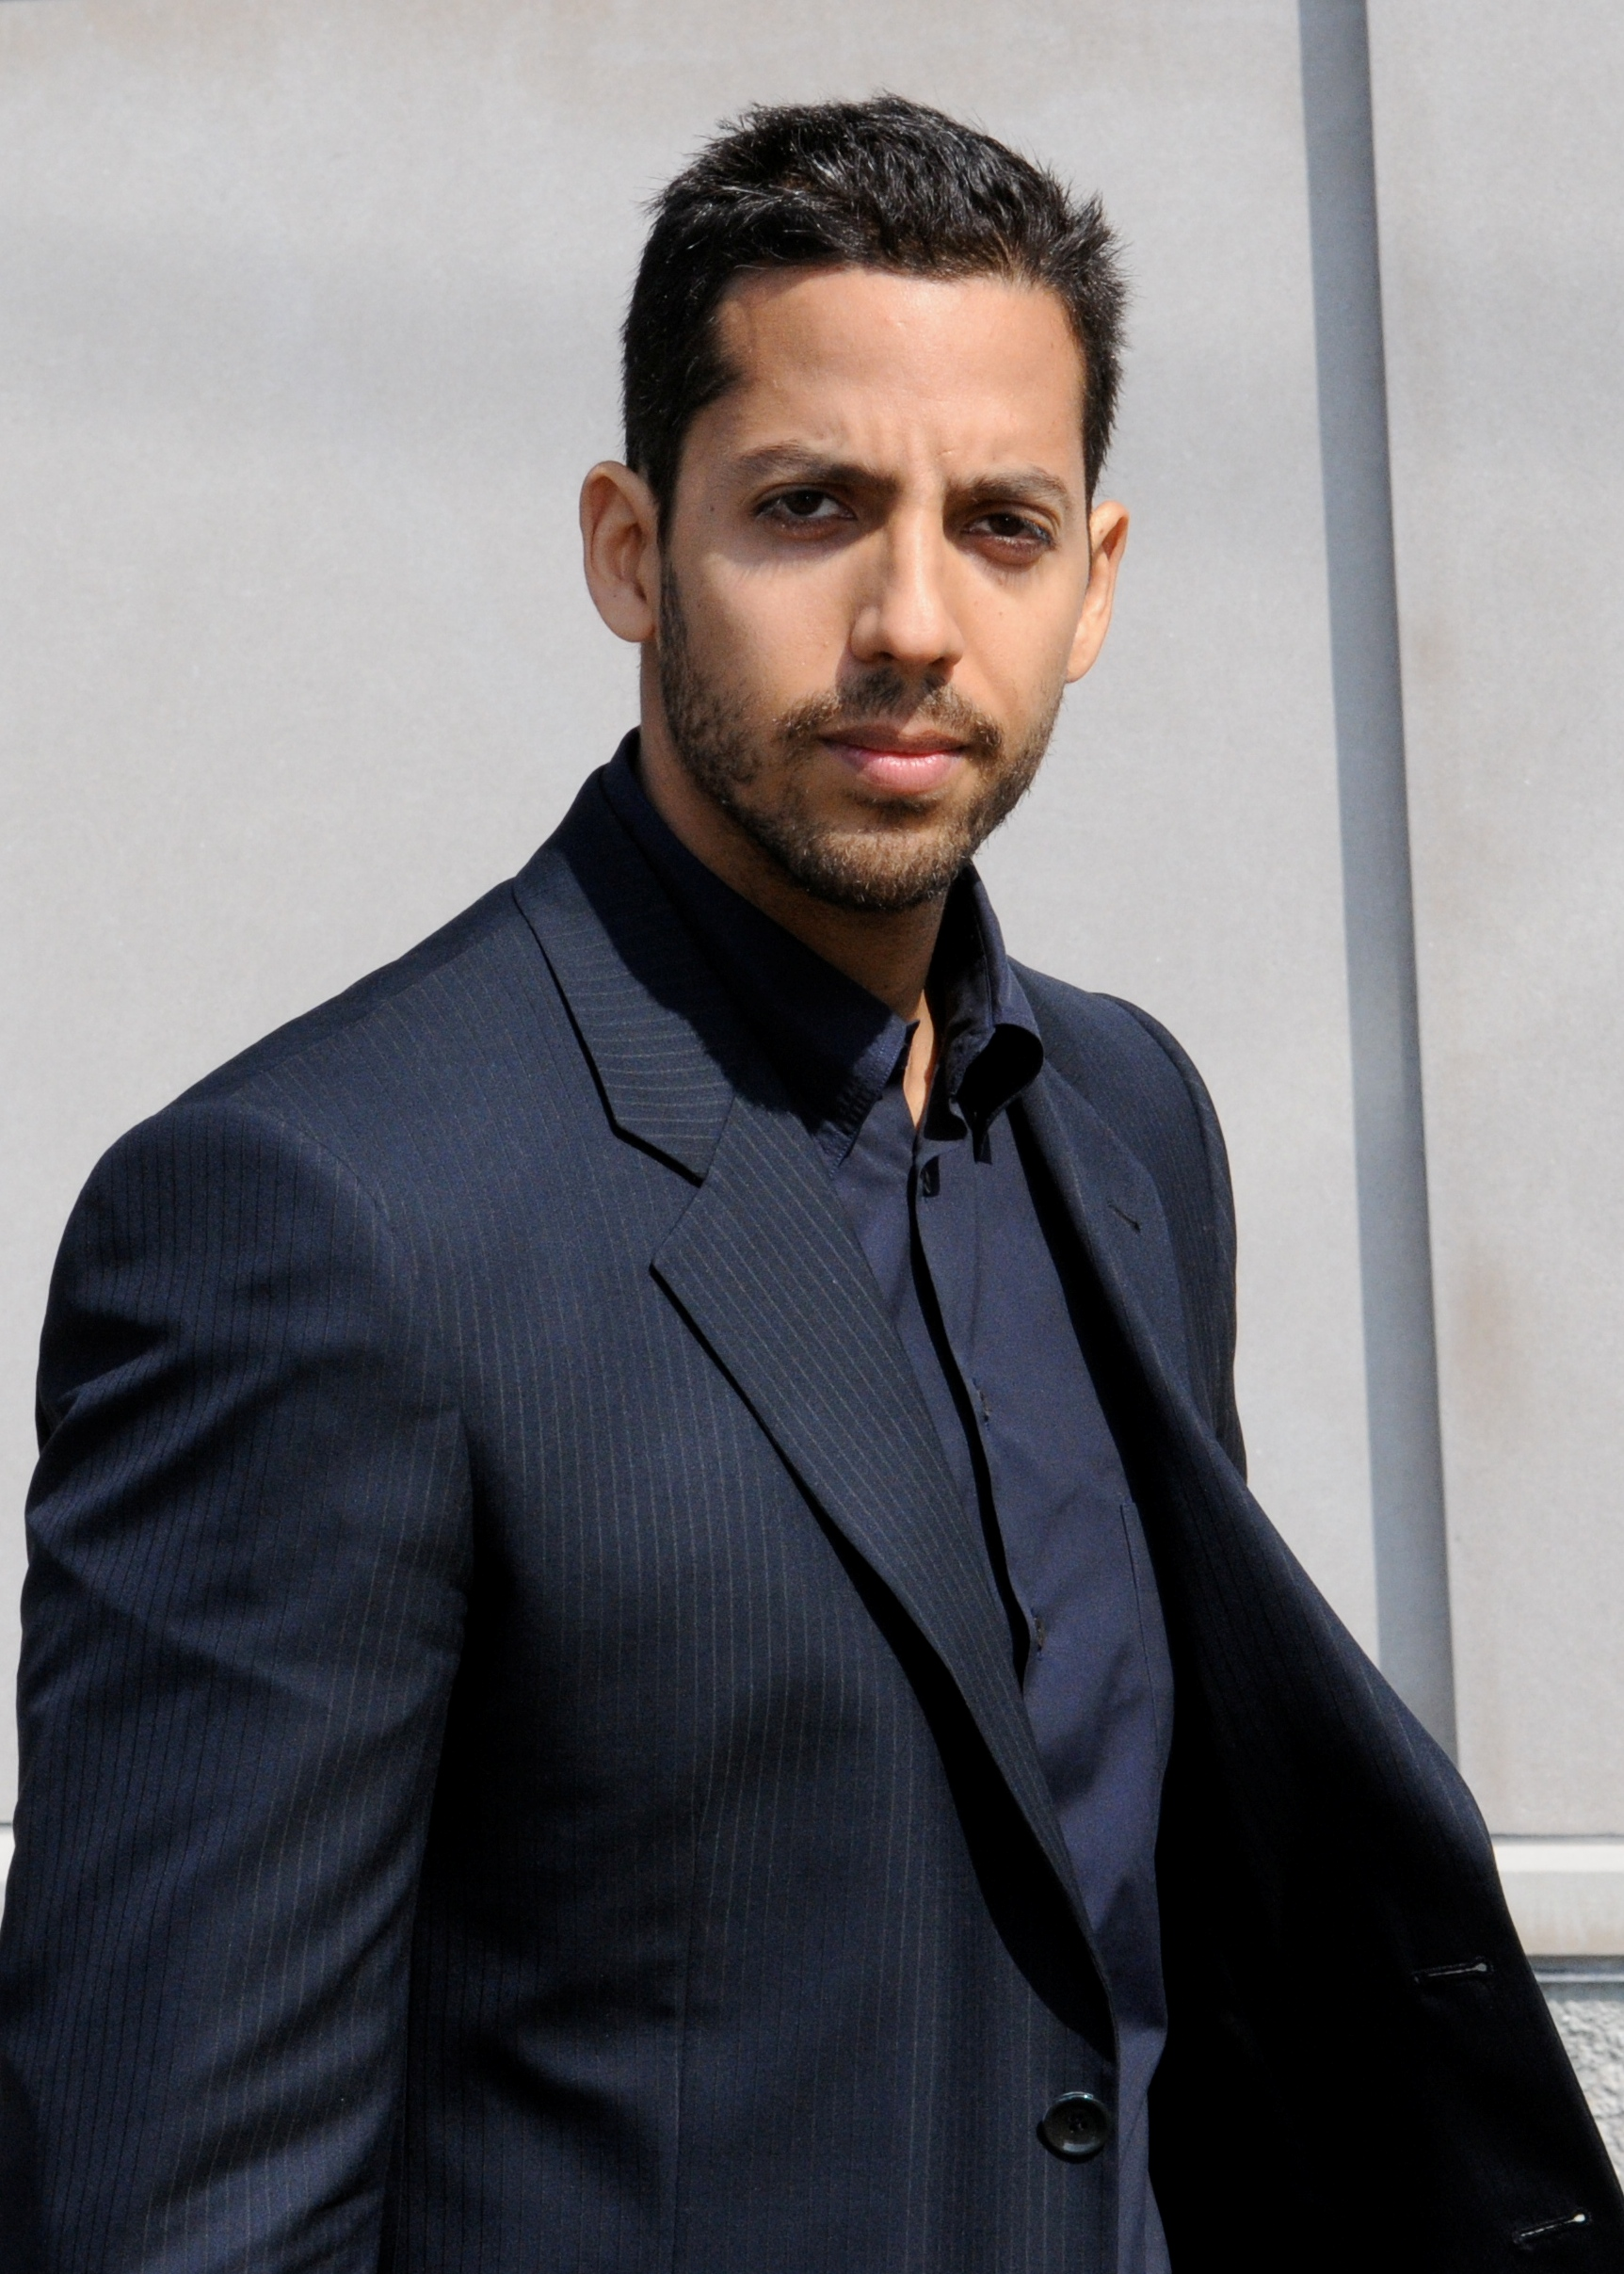 David Blaine - Illusionist & Magicia